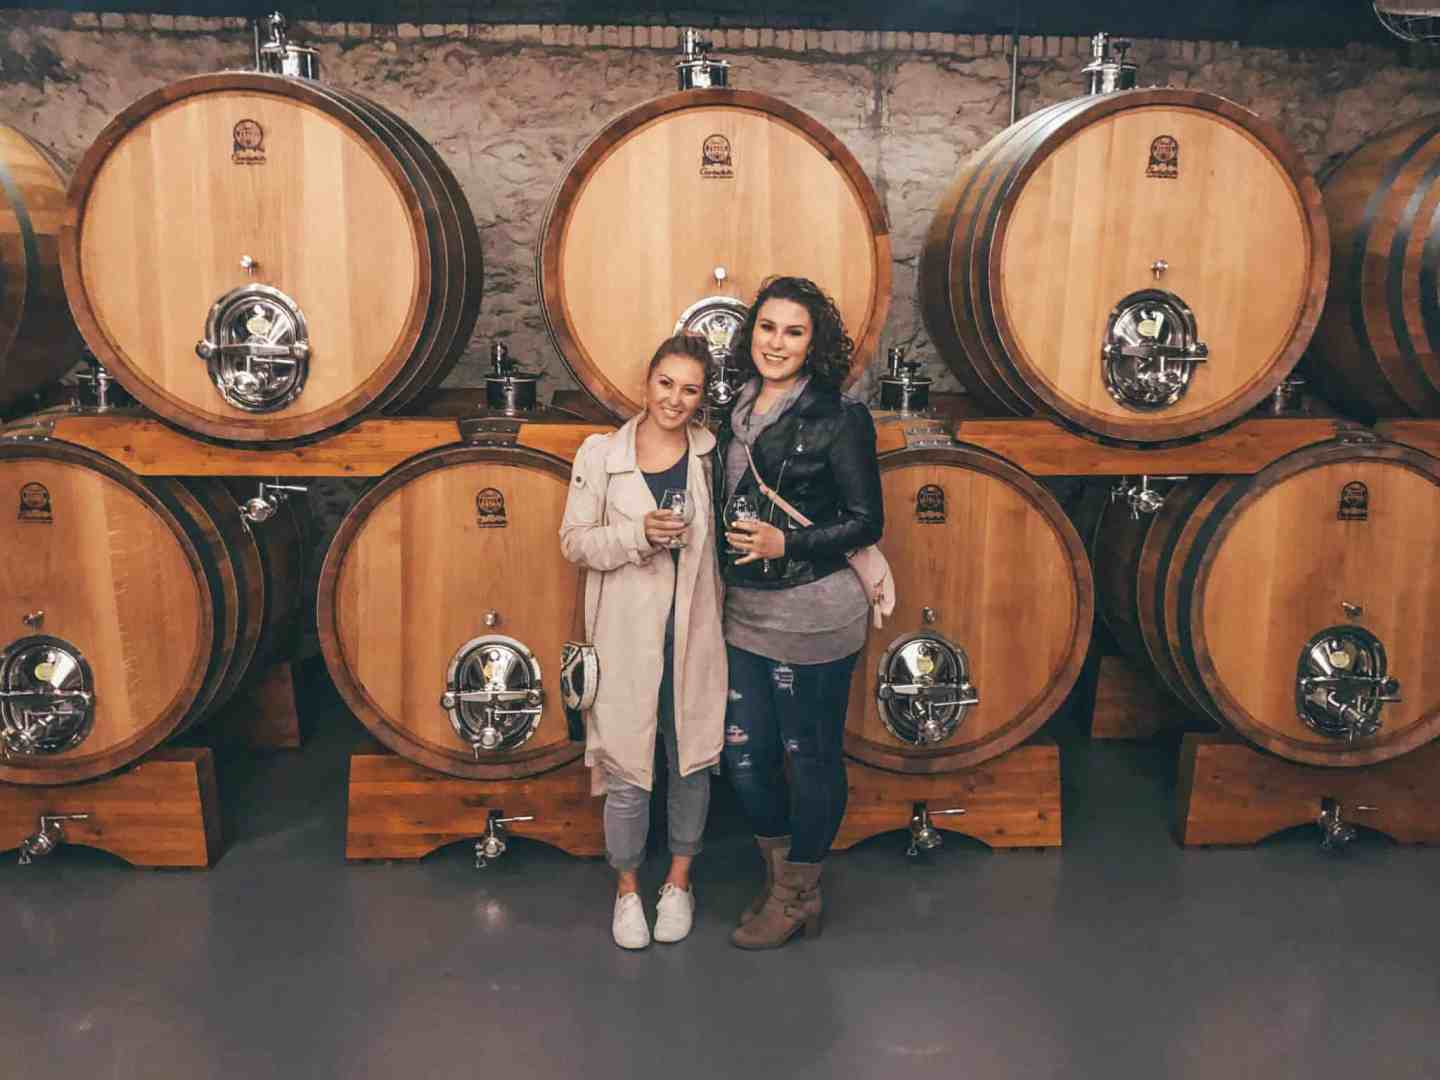 Complete Guide to Boston - Sam Adams Brewery Tour